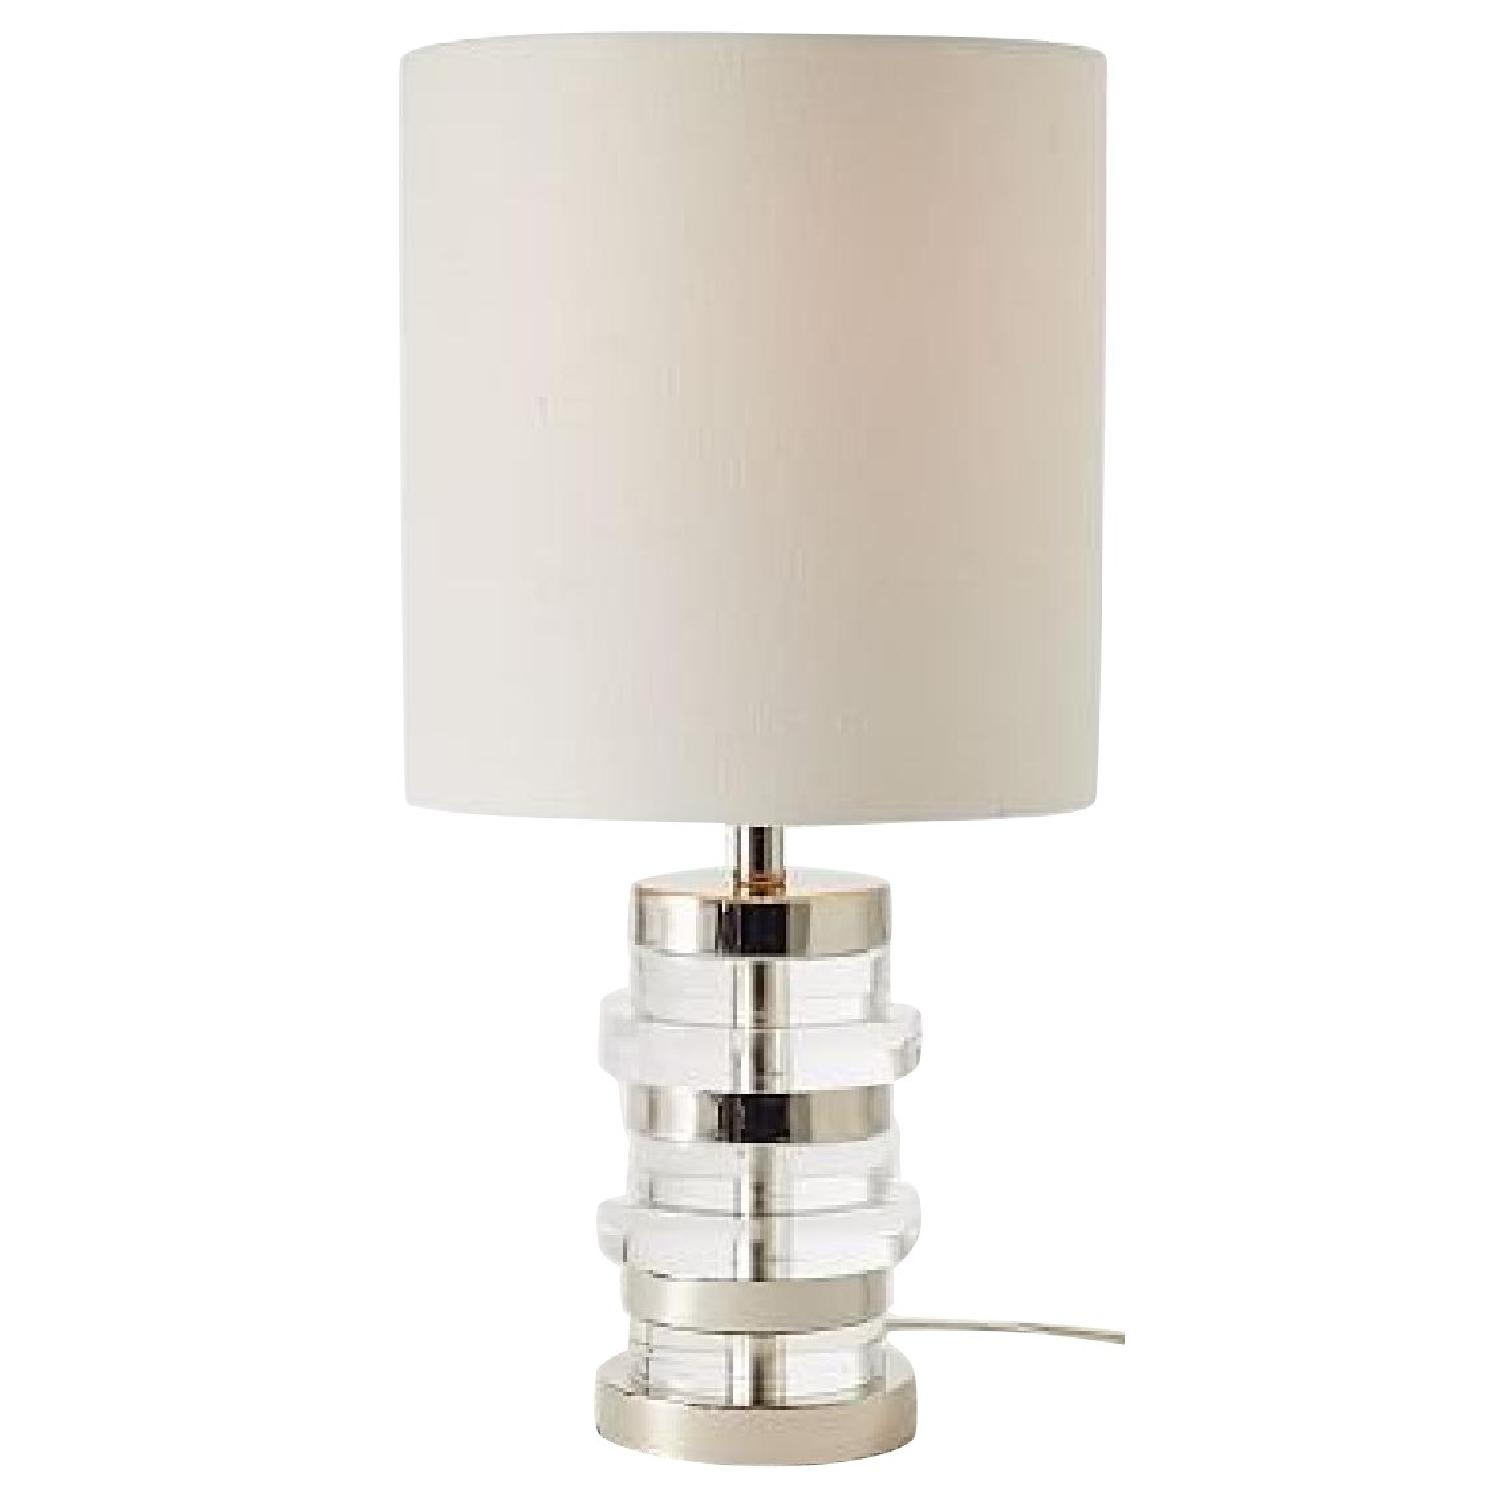 West elm clear disc small table lamp aptdeco west elm clear disc small table lamp aloadofball Choice Image